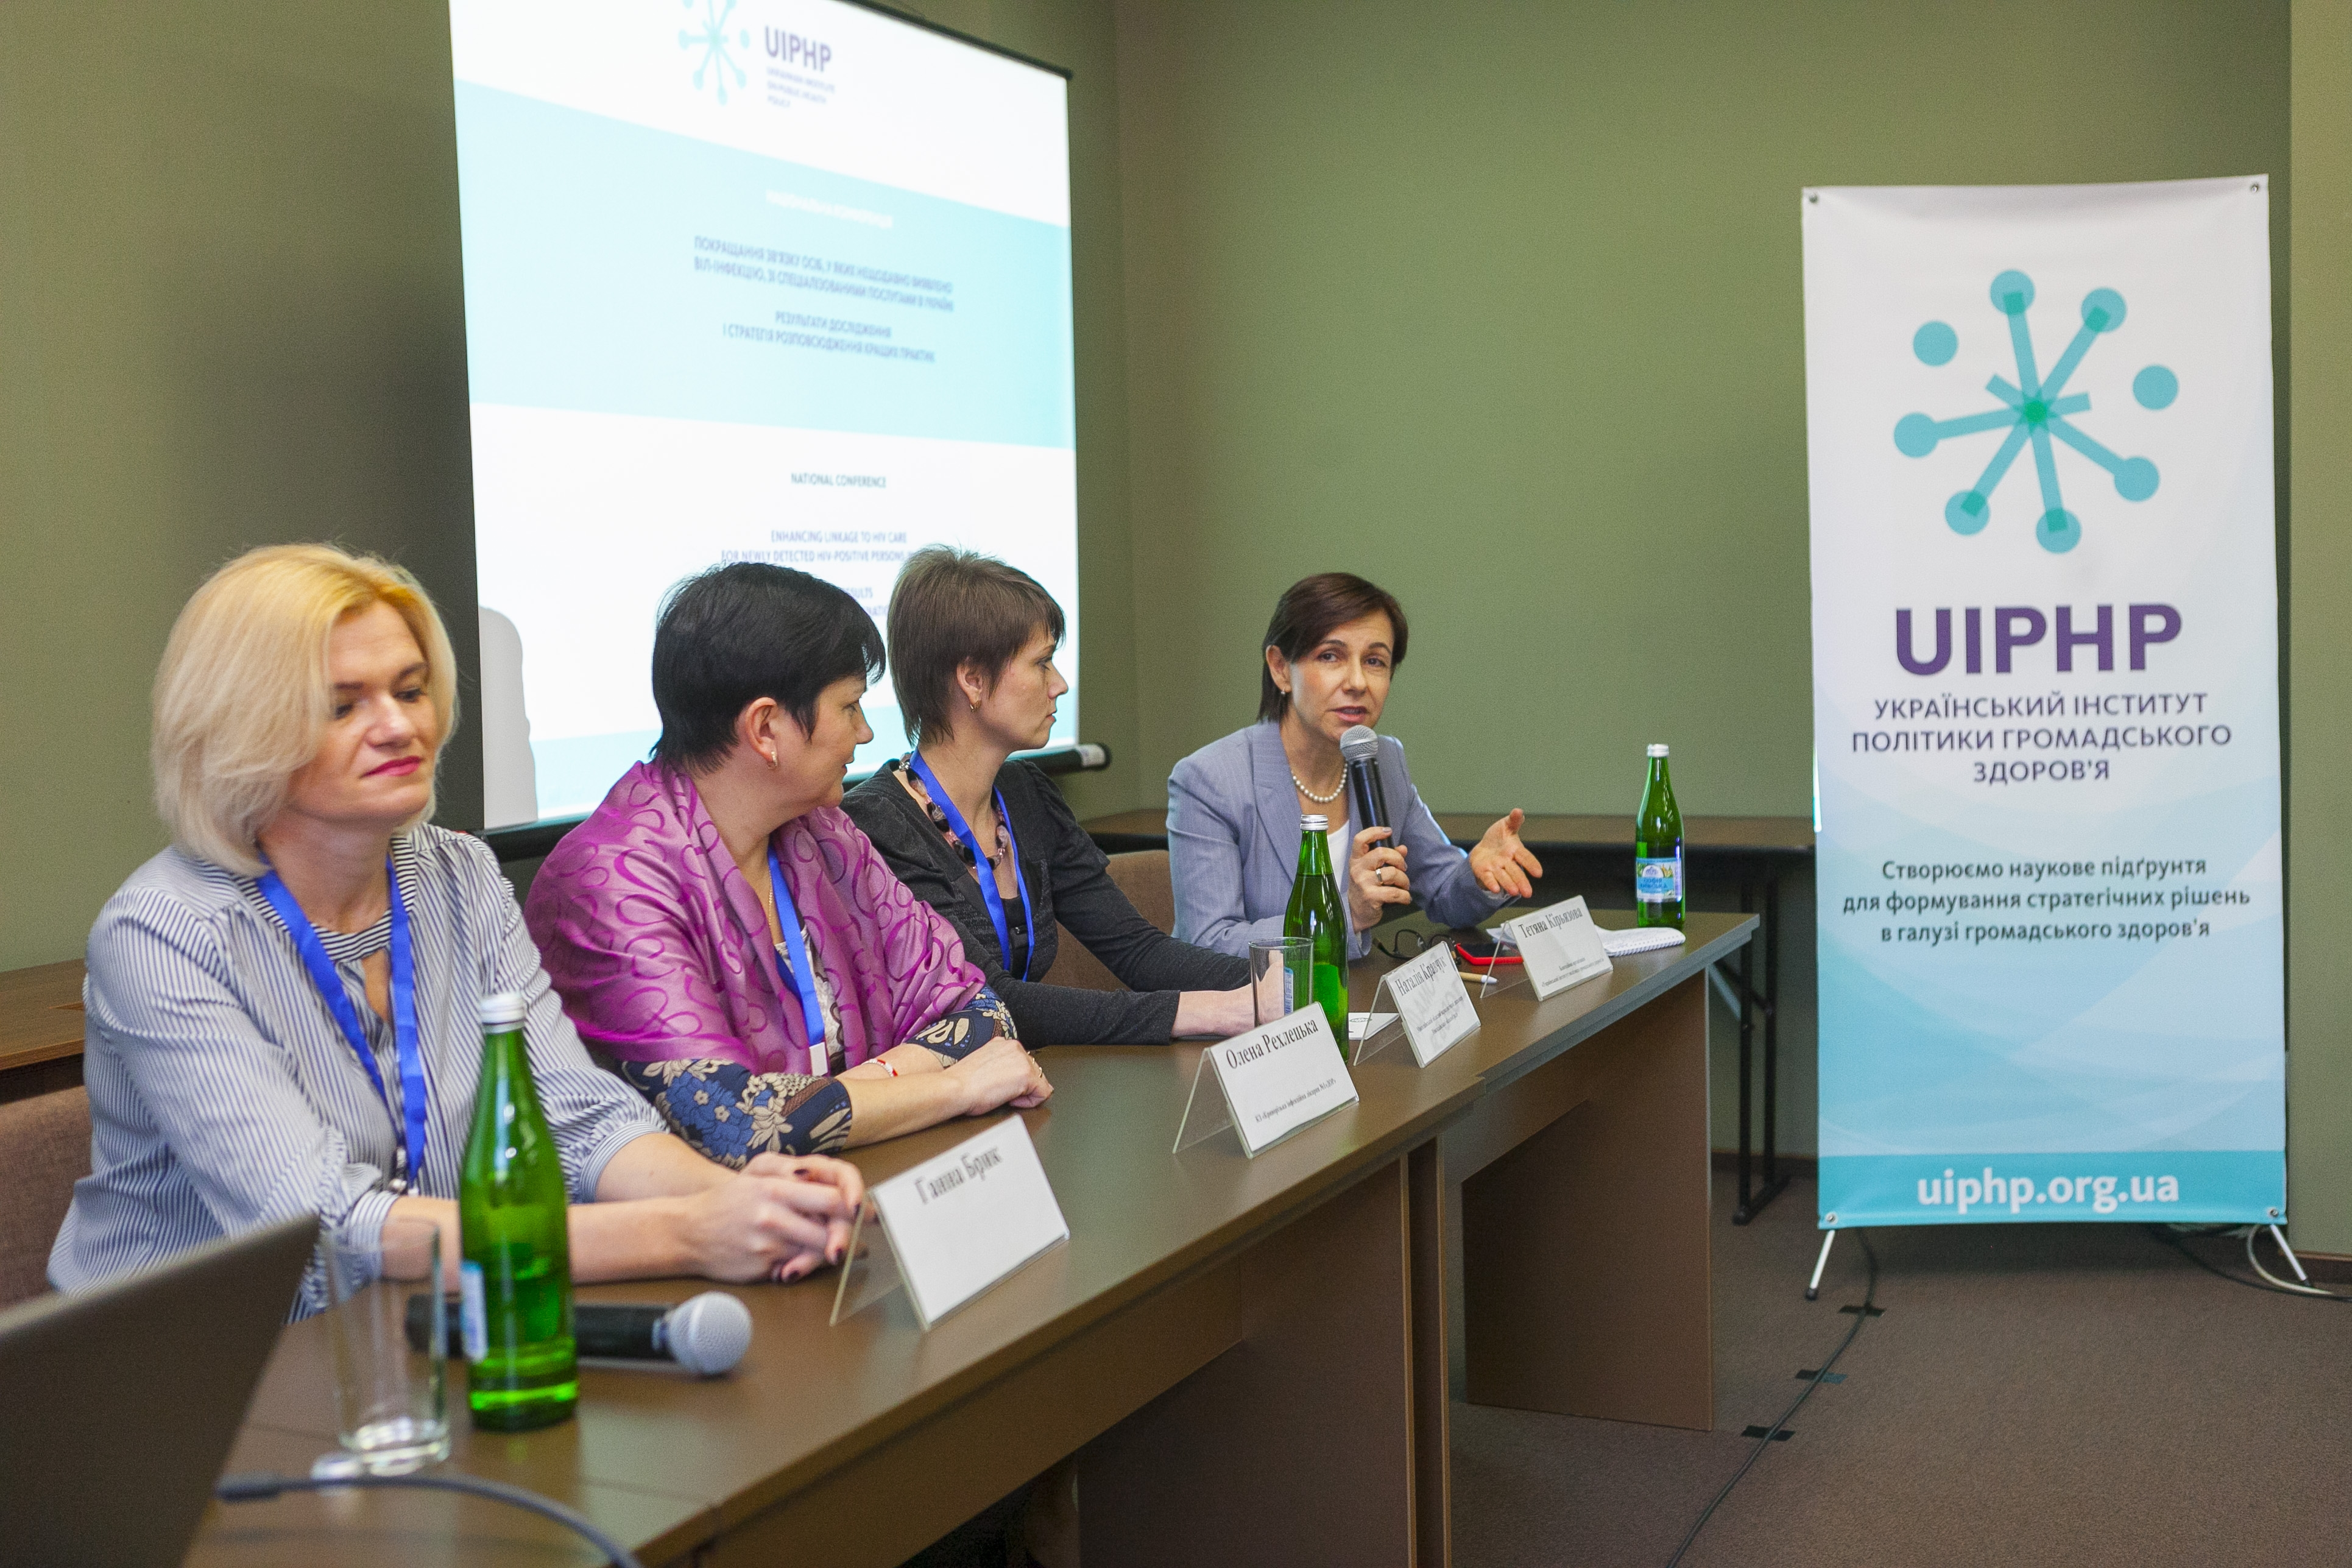 The effectiveness of a new approach to care for people diagnosed with HIV has been proven in Ukraine